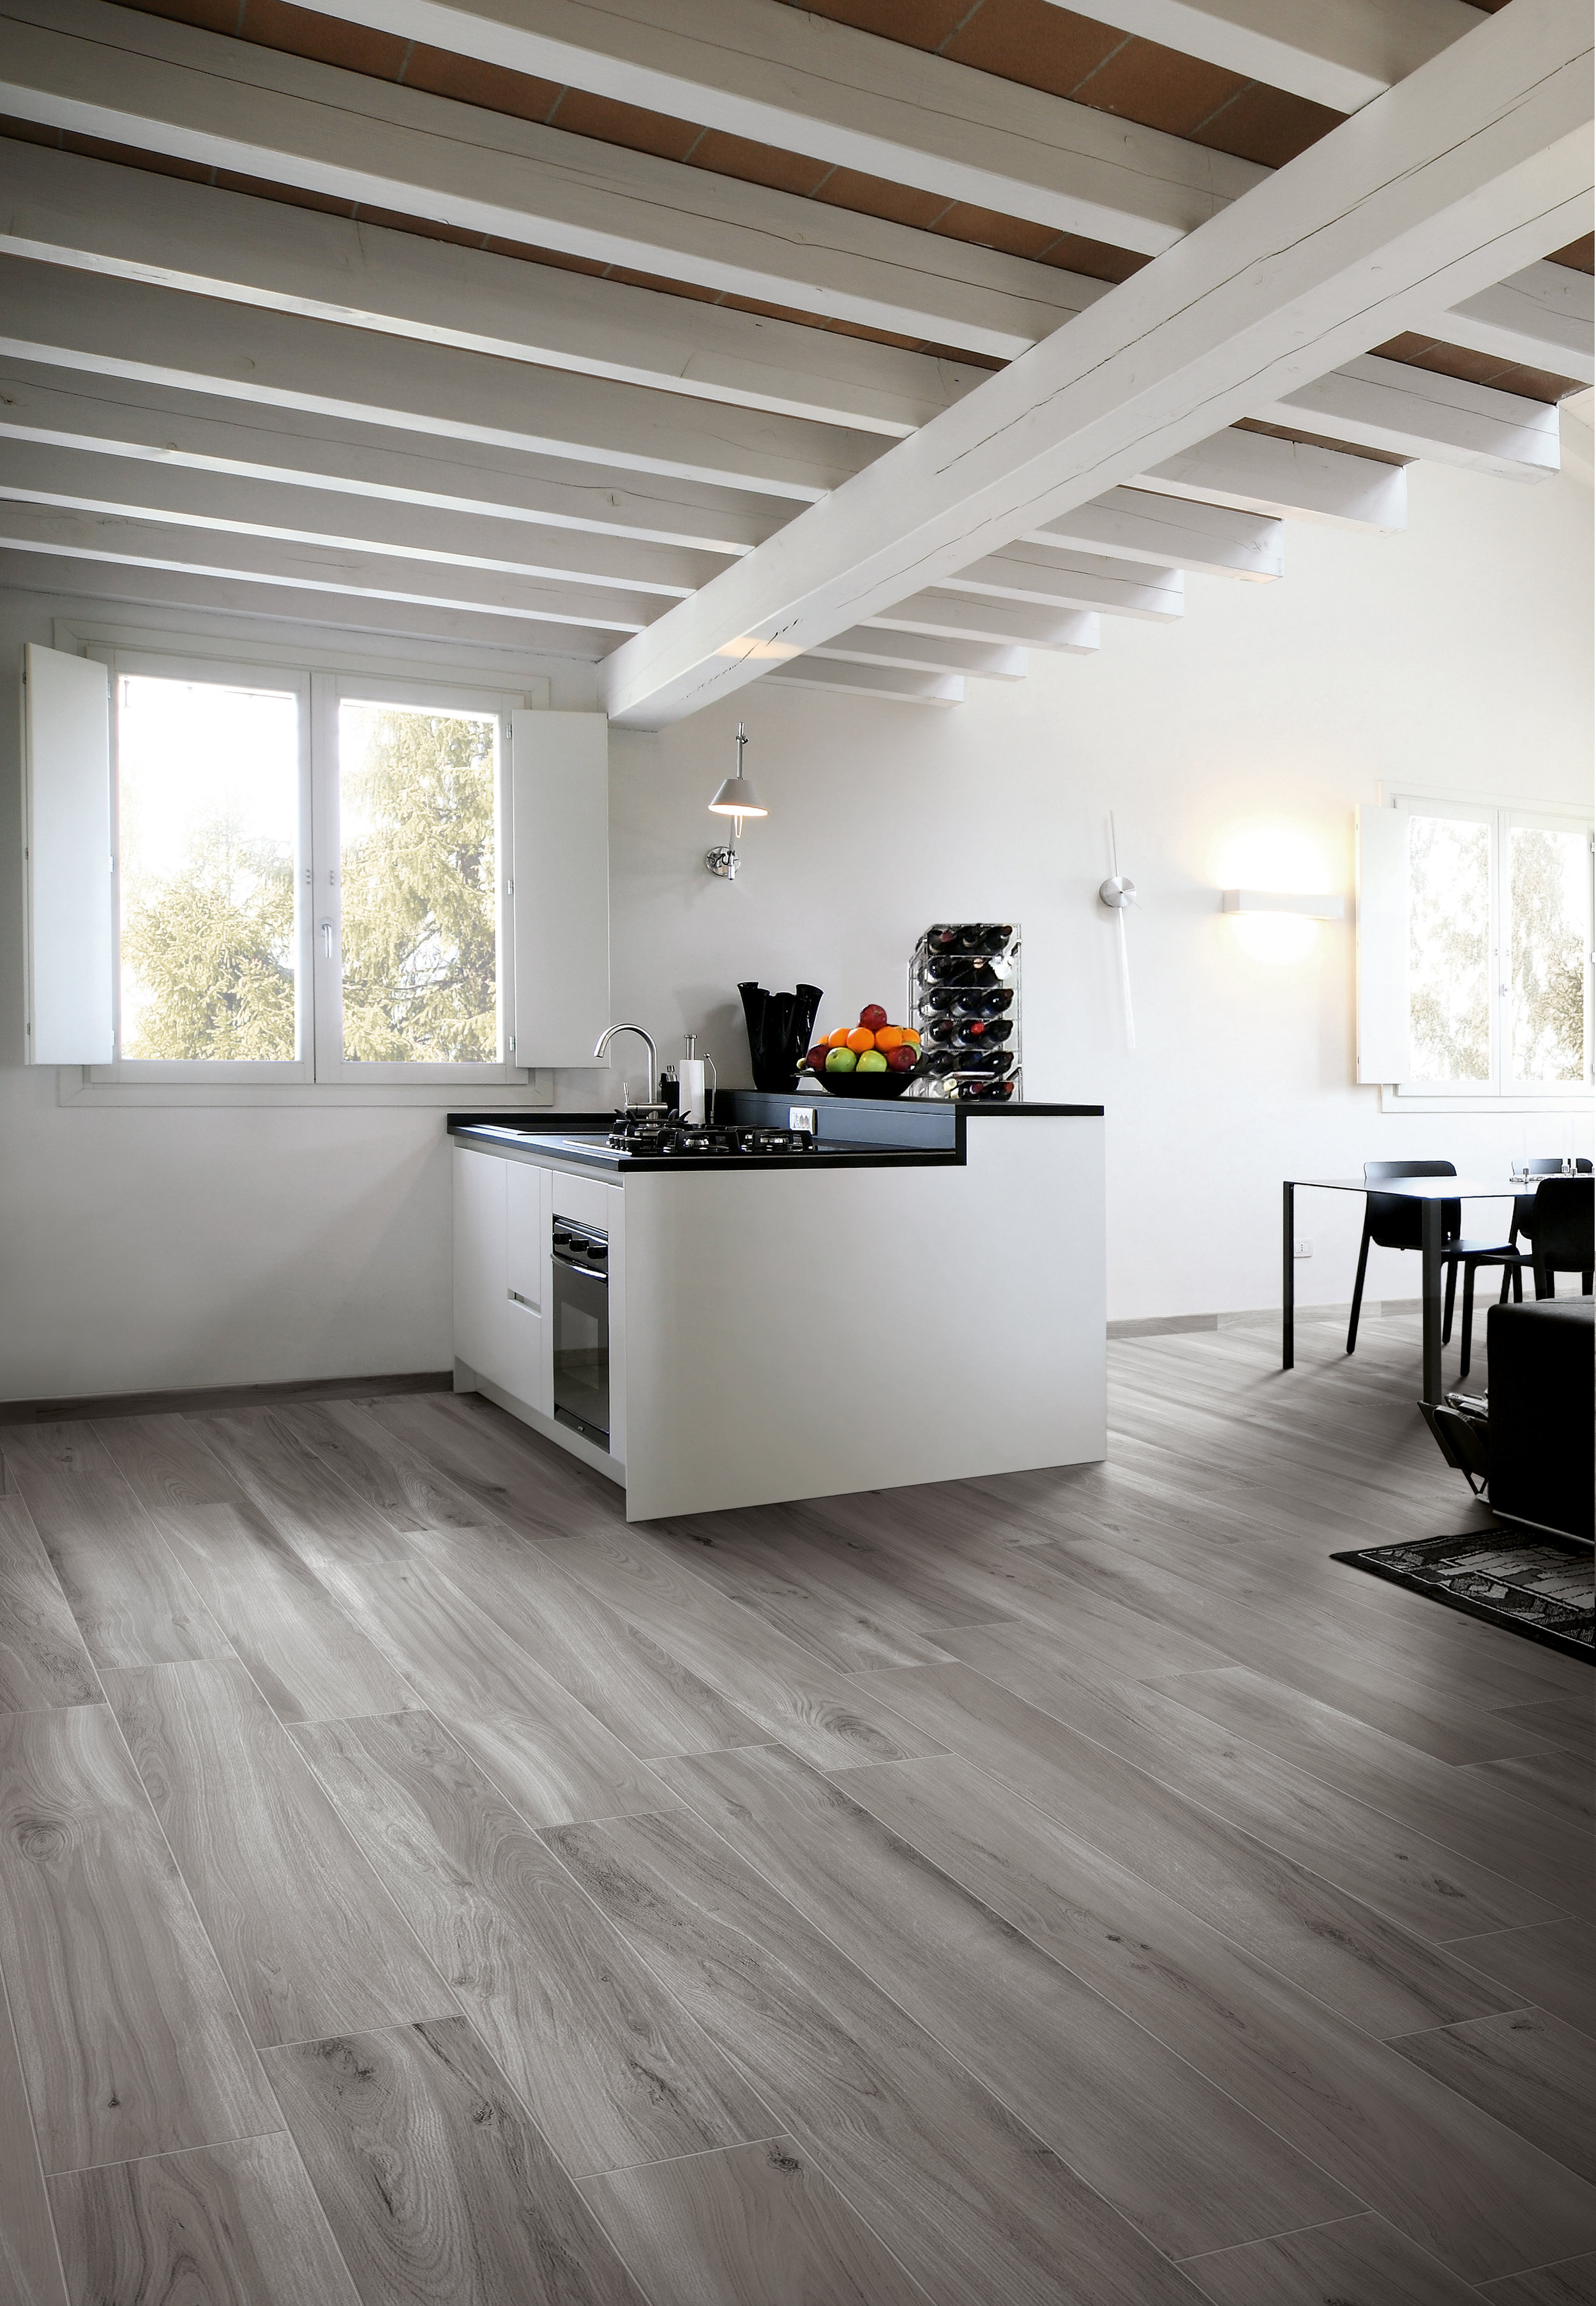 mood wood cucina pav grey 20x120.jpg